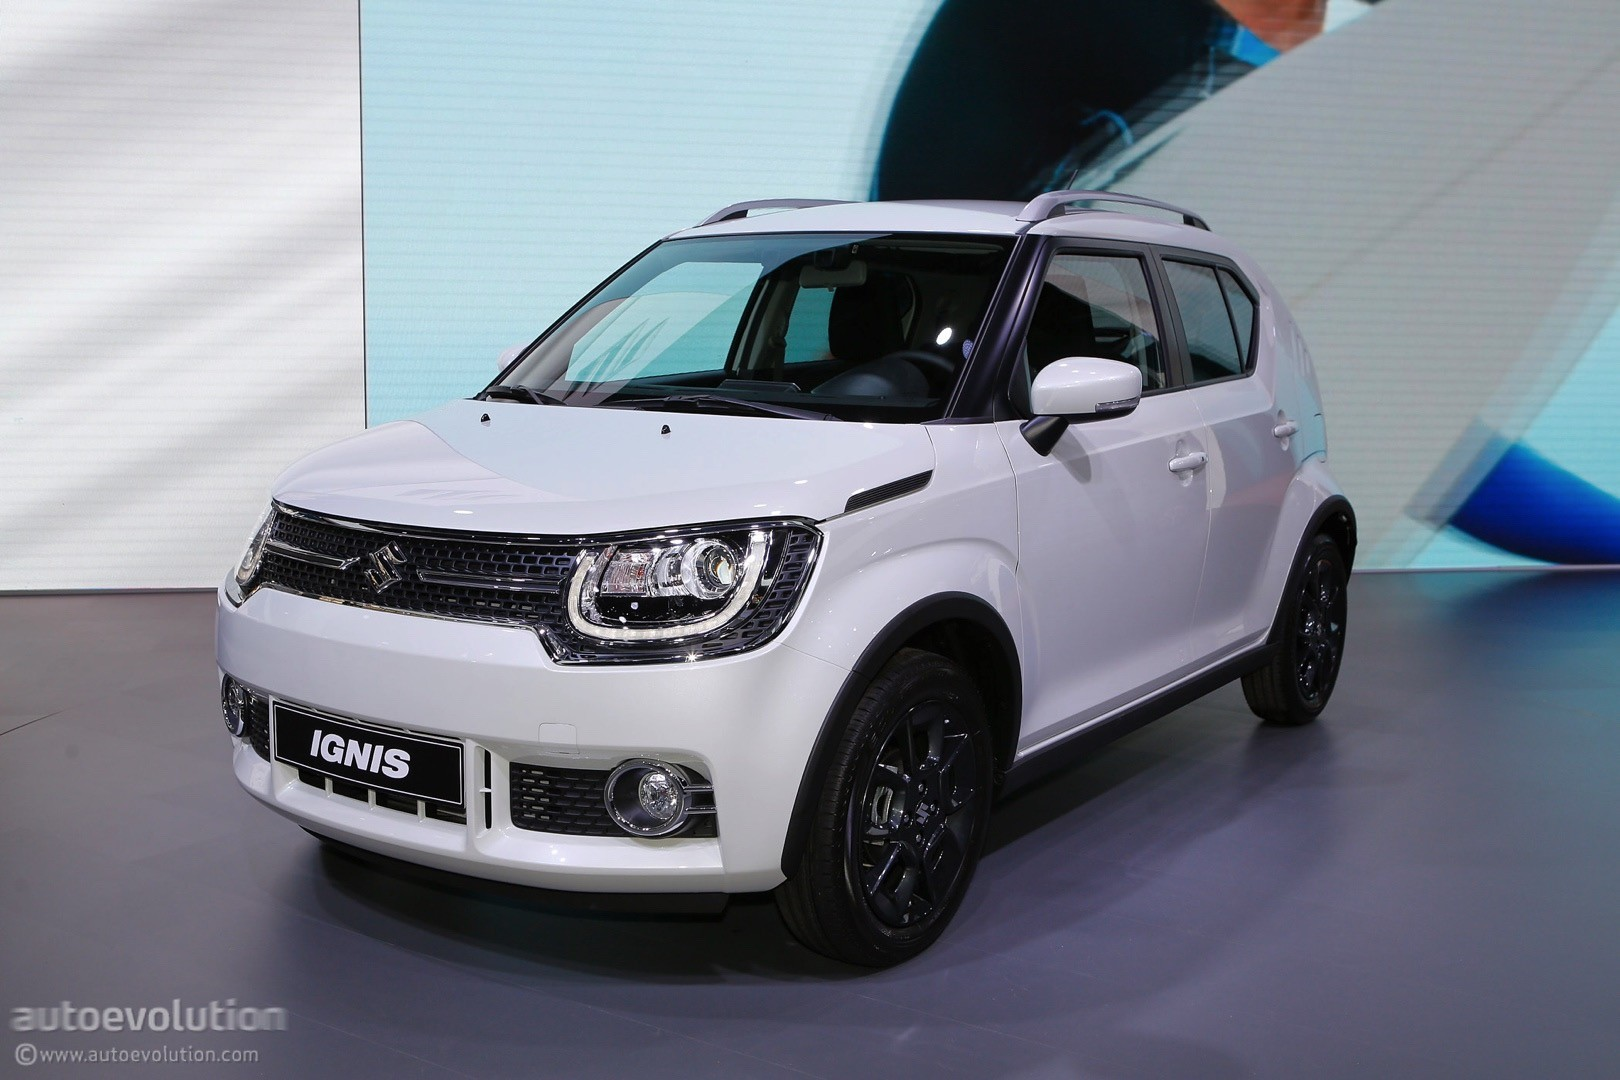 2017 Suzuki Ignis Price Set for Europe: £9,999 in the UK ...